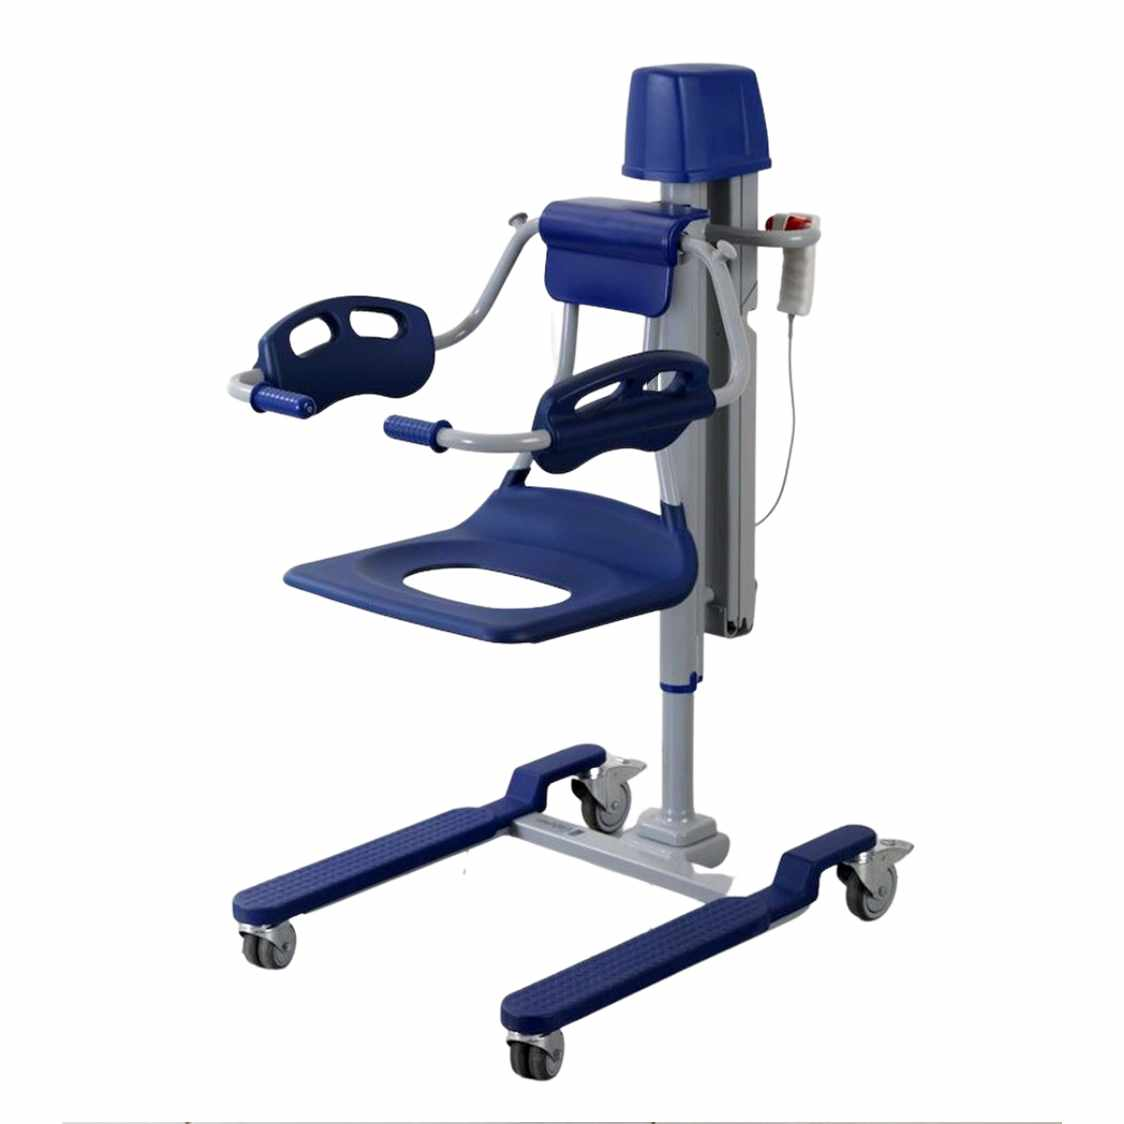 Arjo Calypso bath lift chair